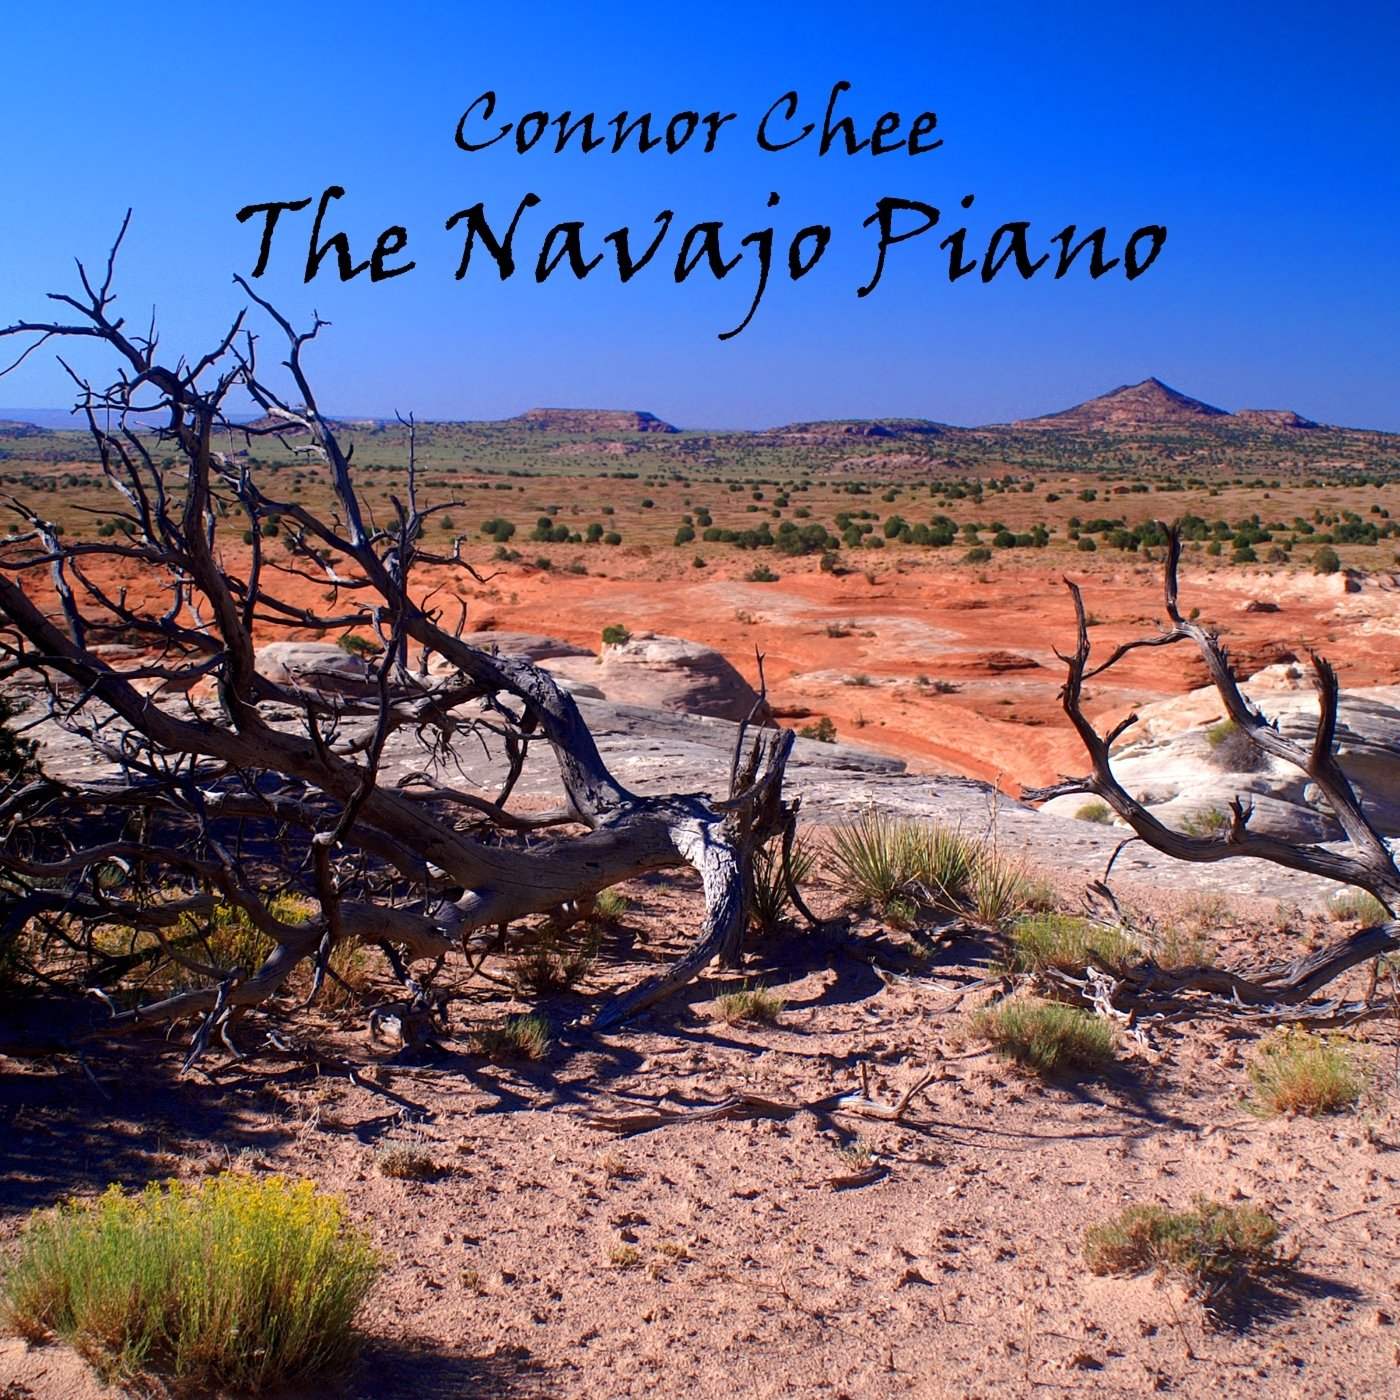 Connor Chee - THE NAVAJO PIANO (Physical CD)